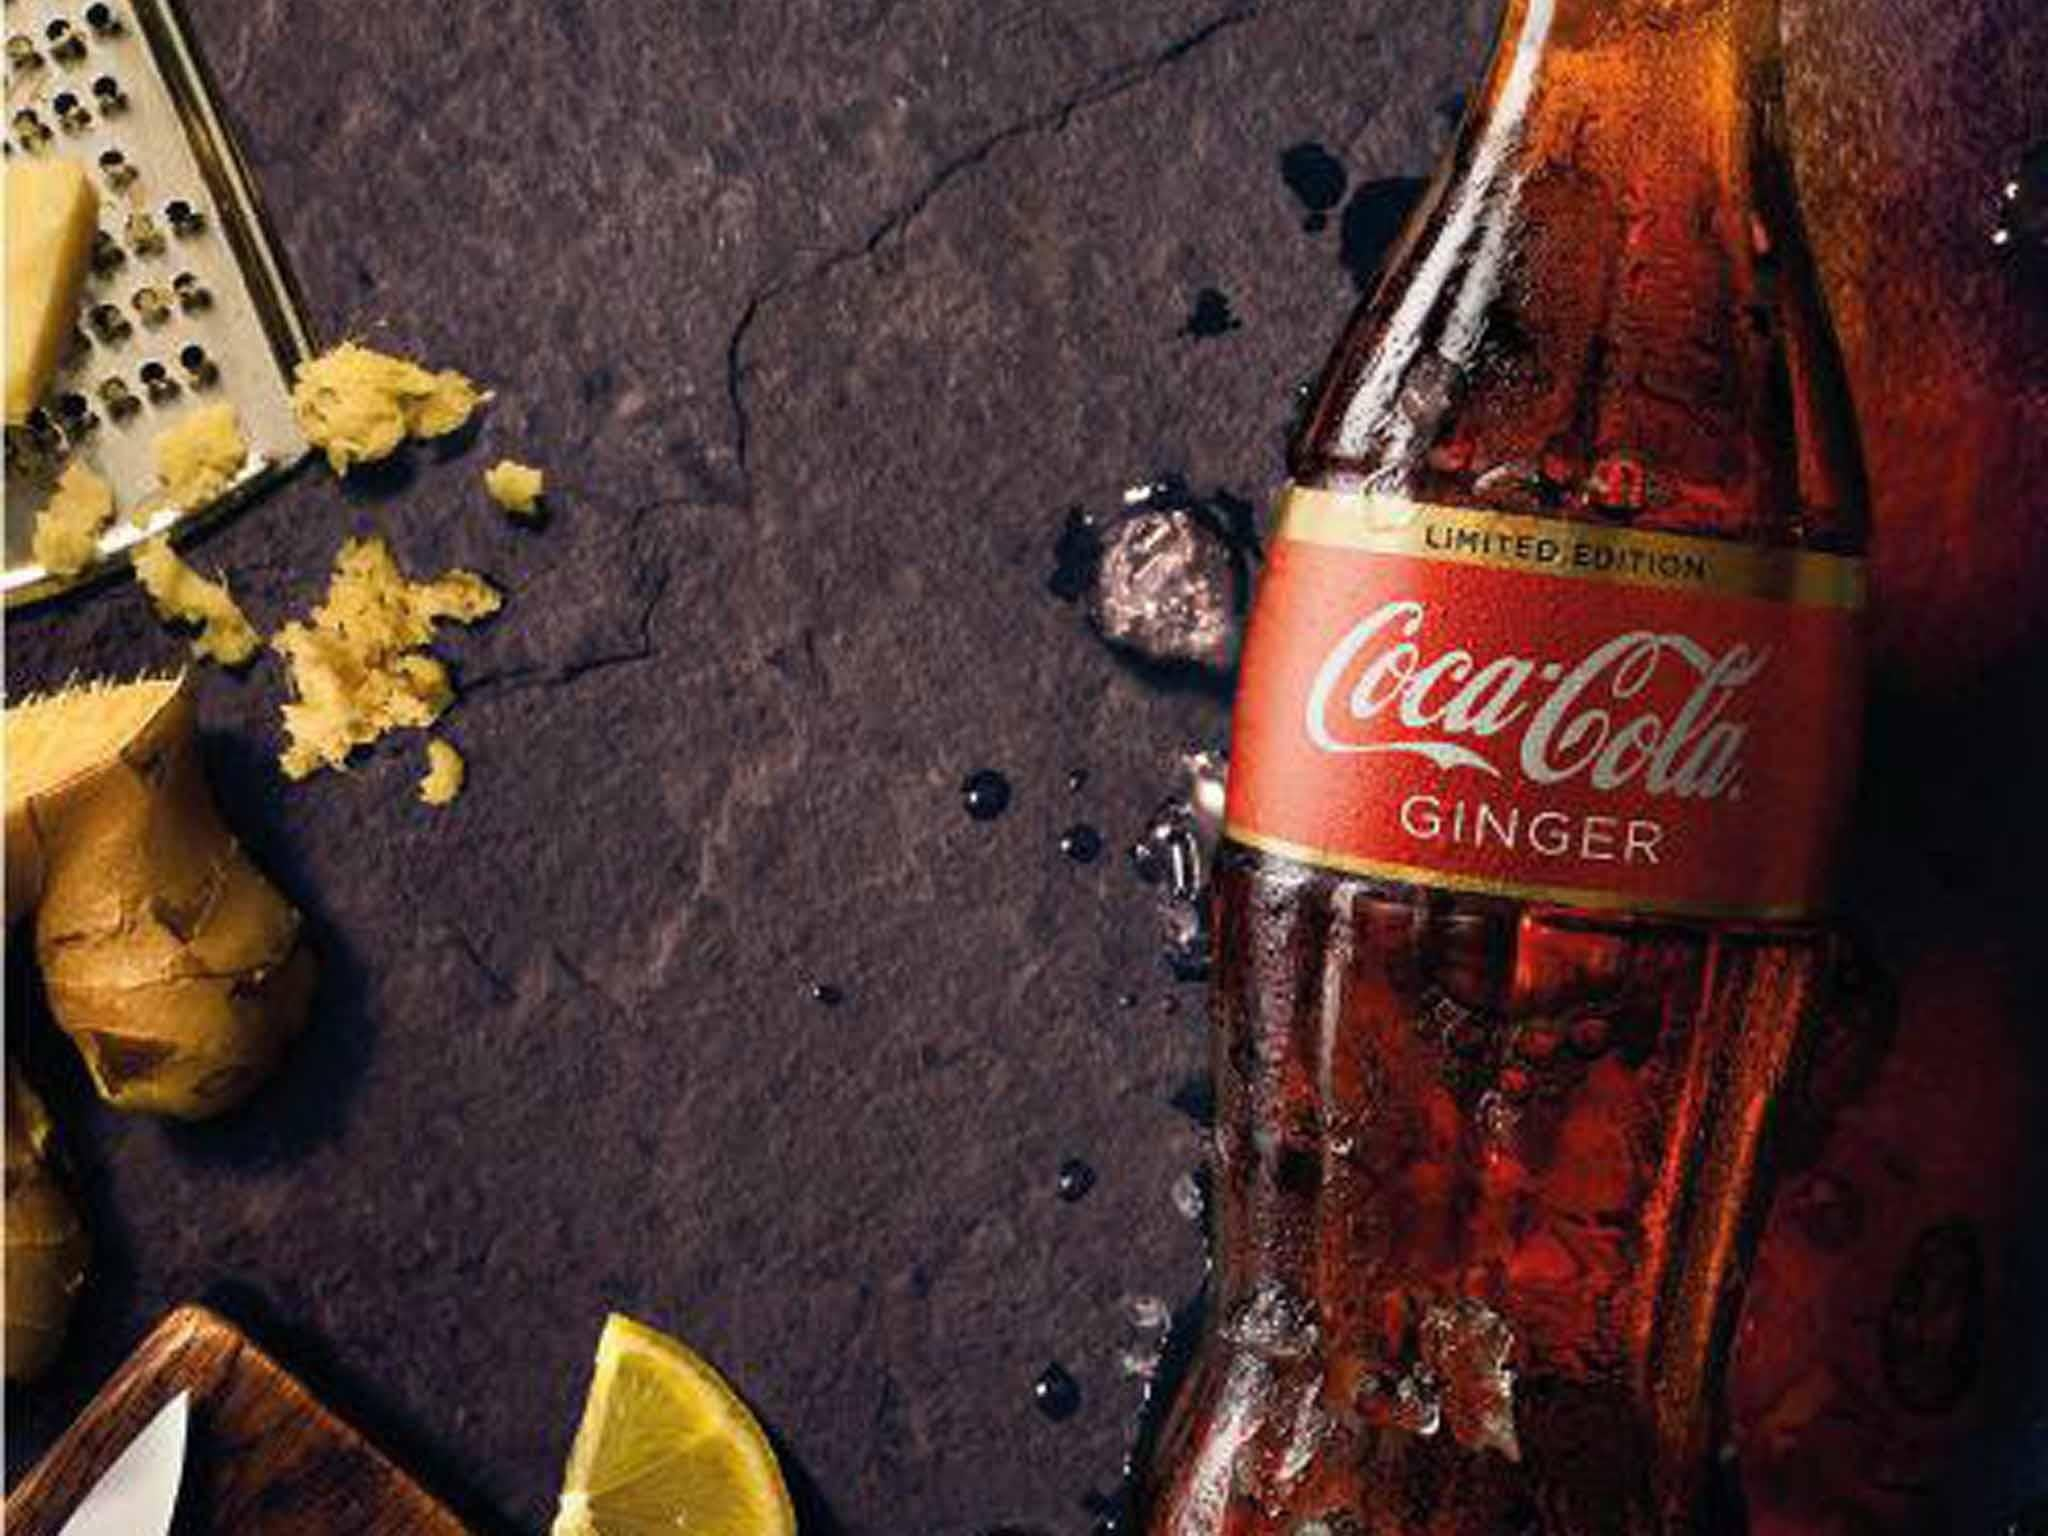 Ginger Coke New Flavour Divides Coca Cola Fans The Independent Threads